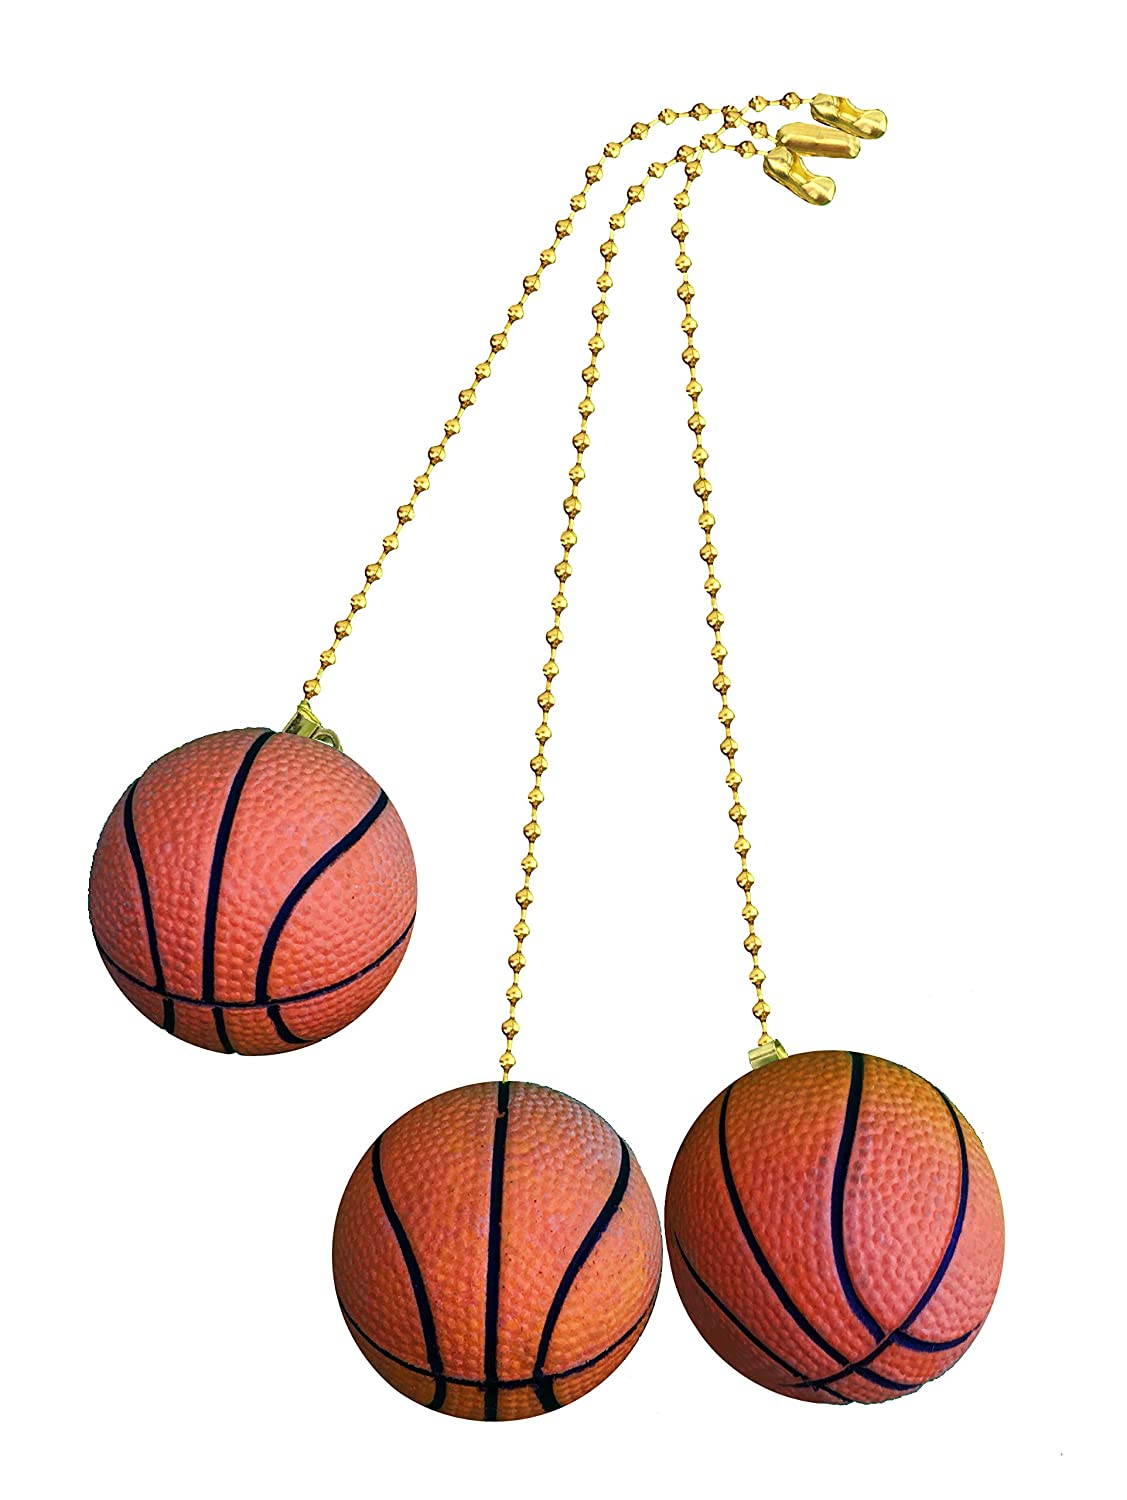 Decorative Basketball Sports Ceiling fan pull with beaded chain - 3 ...